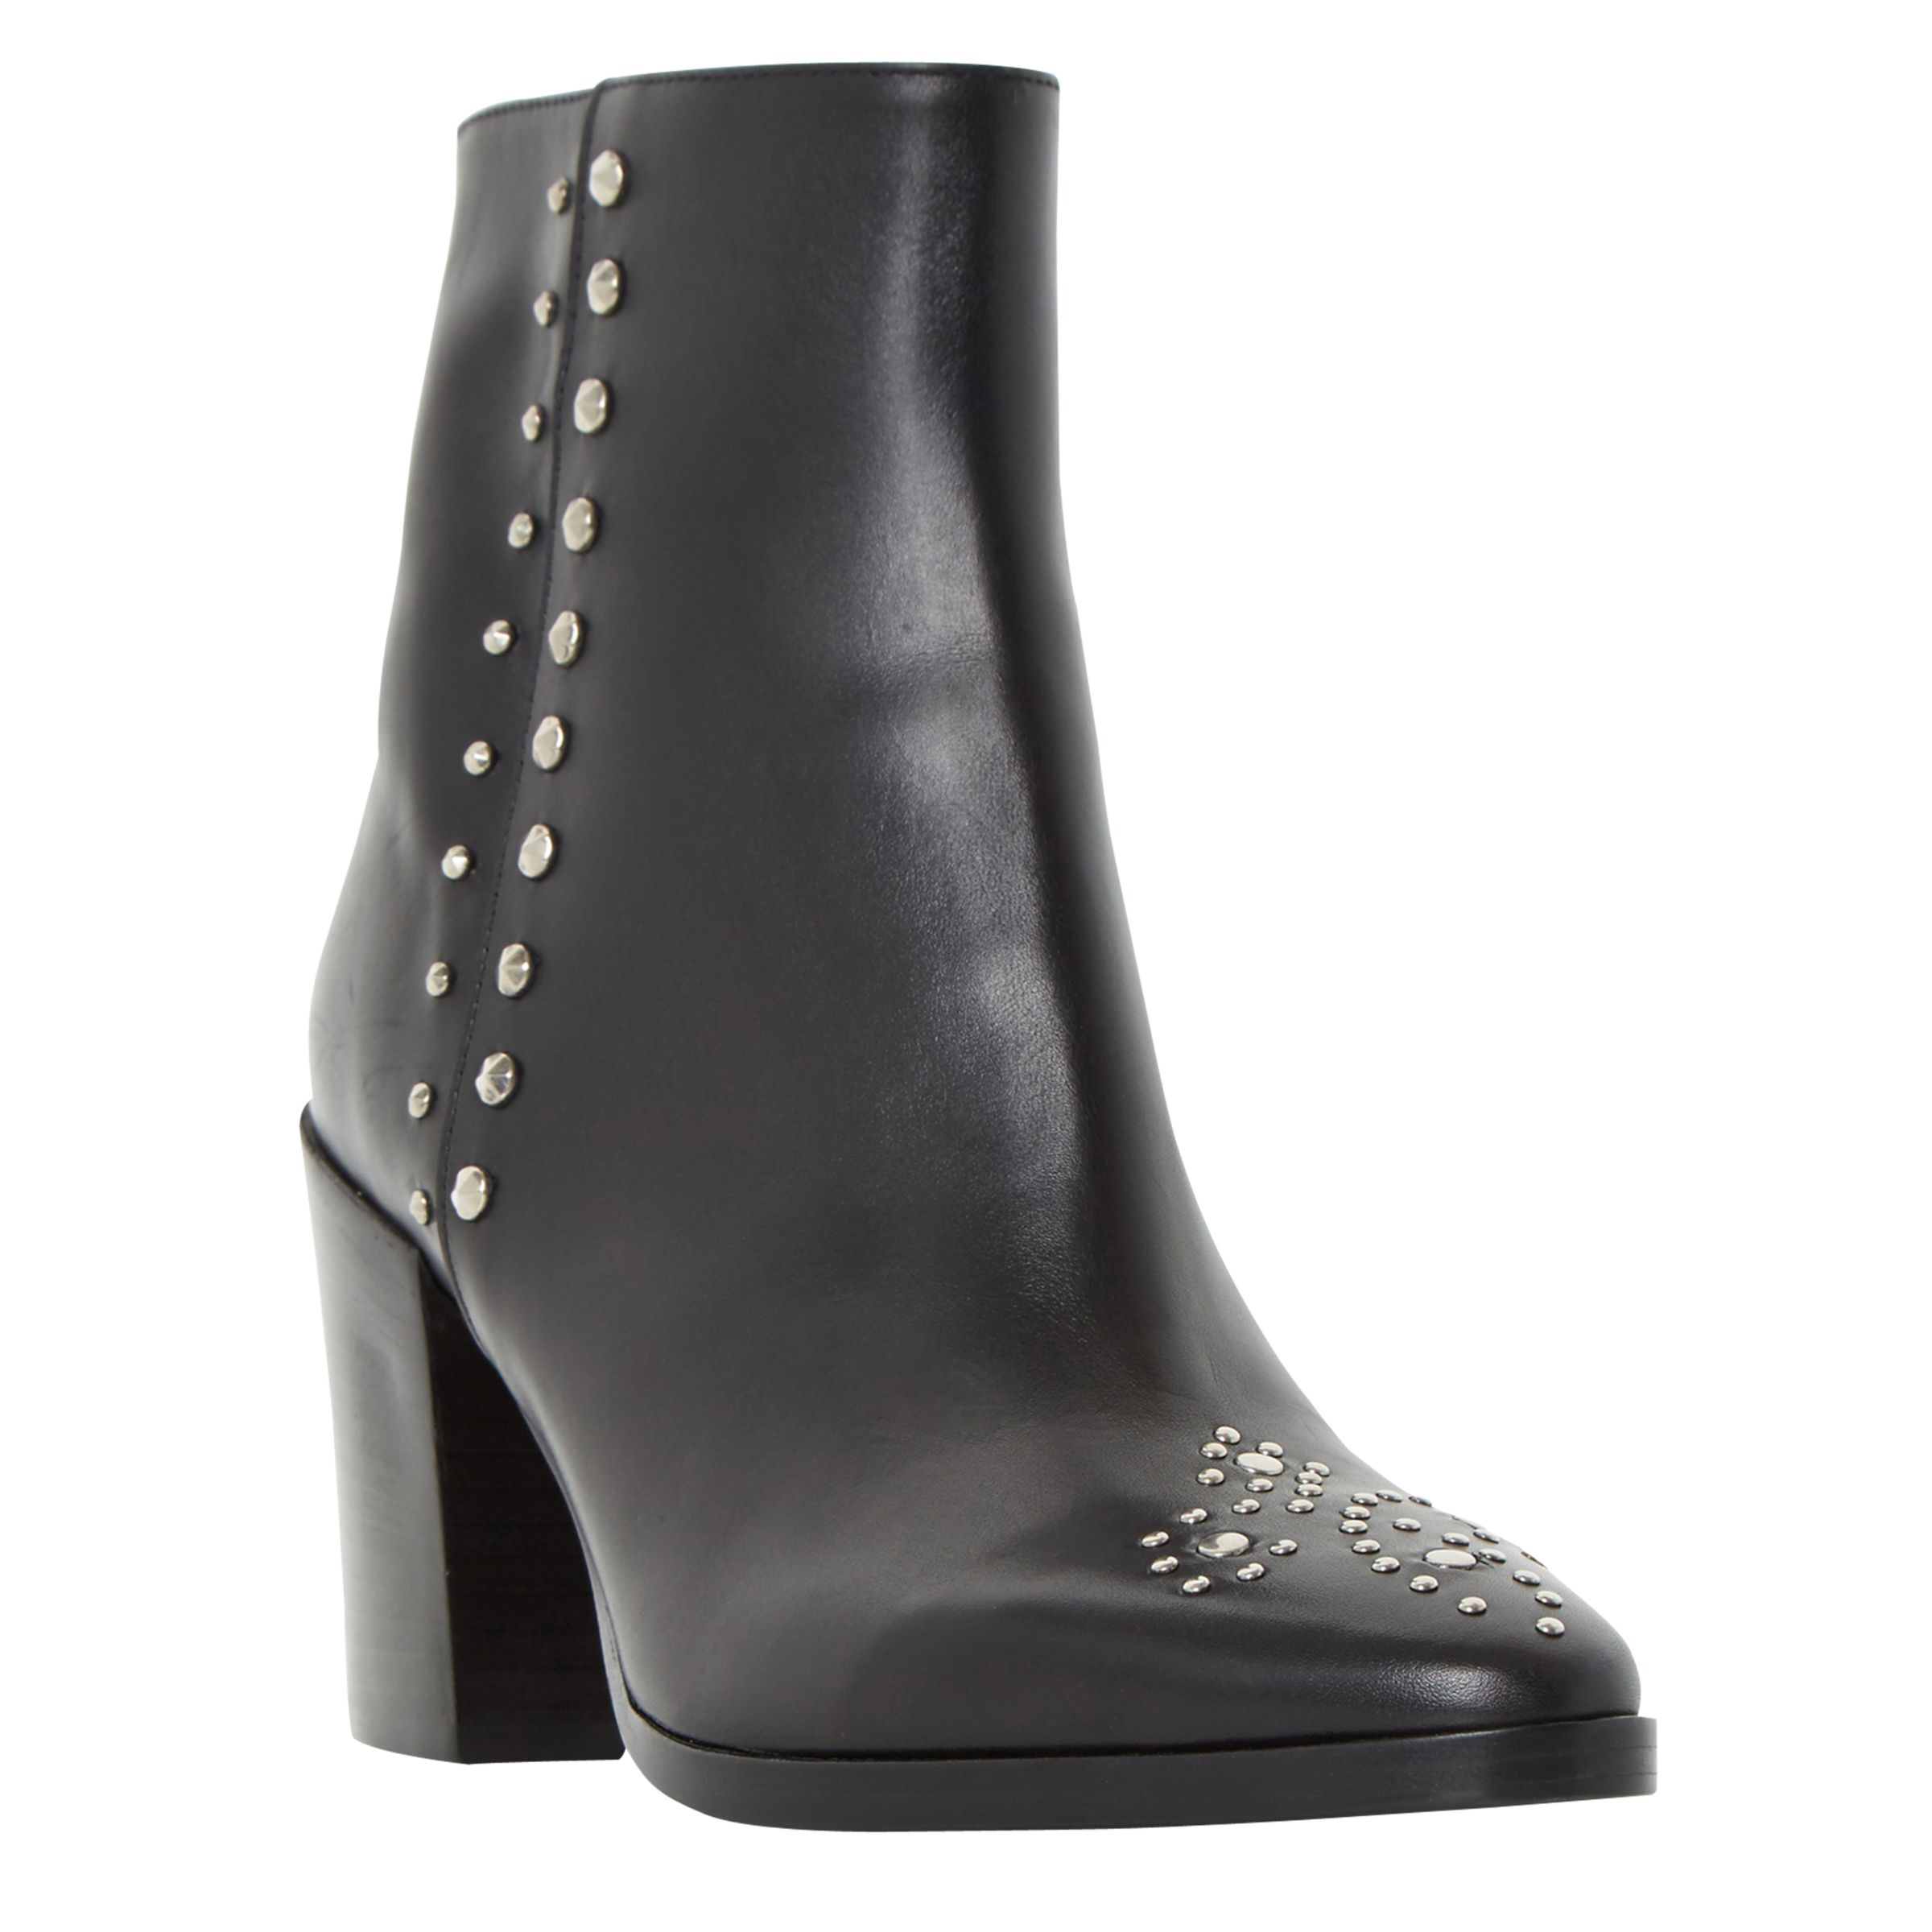 Dune Black Dune Parlow Studded Ankle Boots, Black Leather